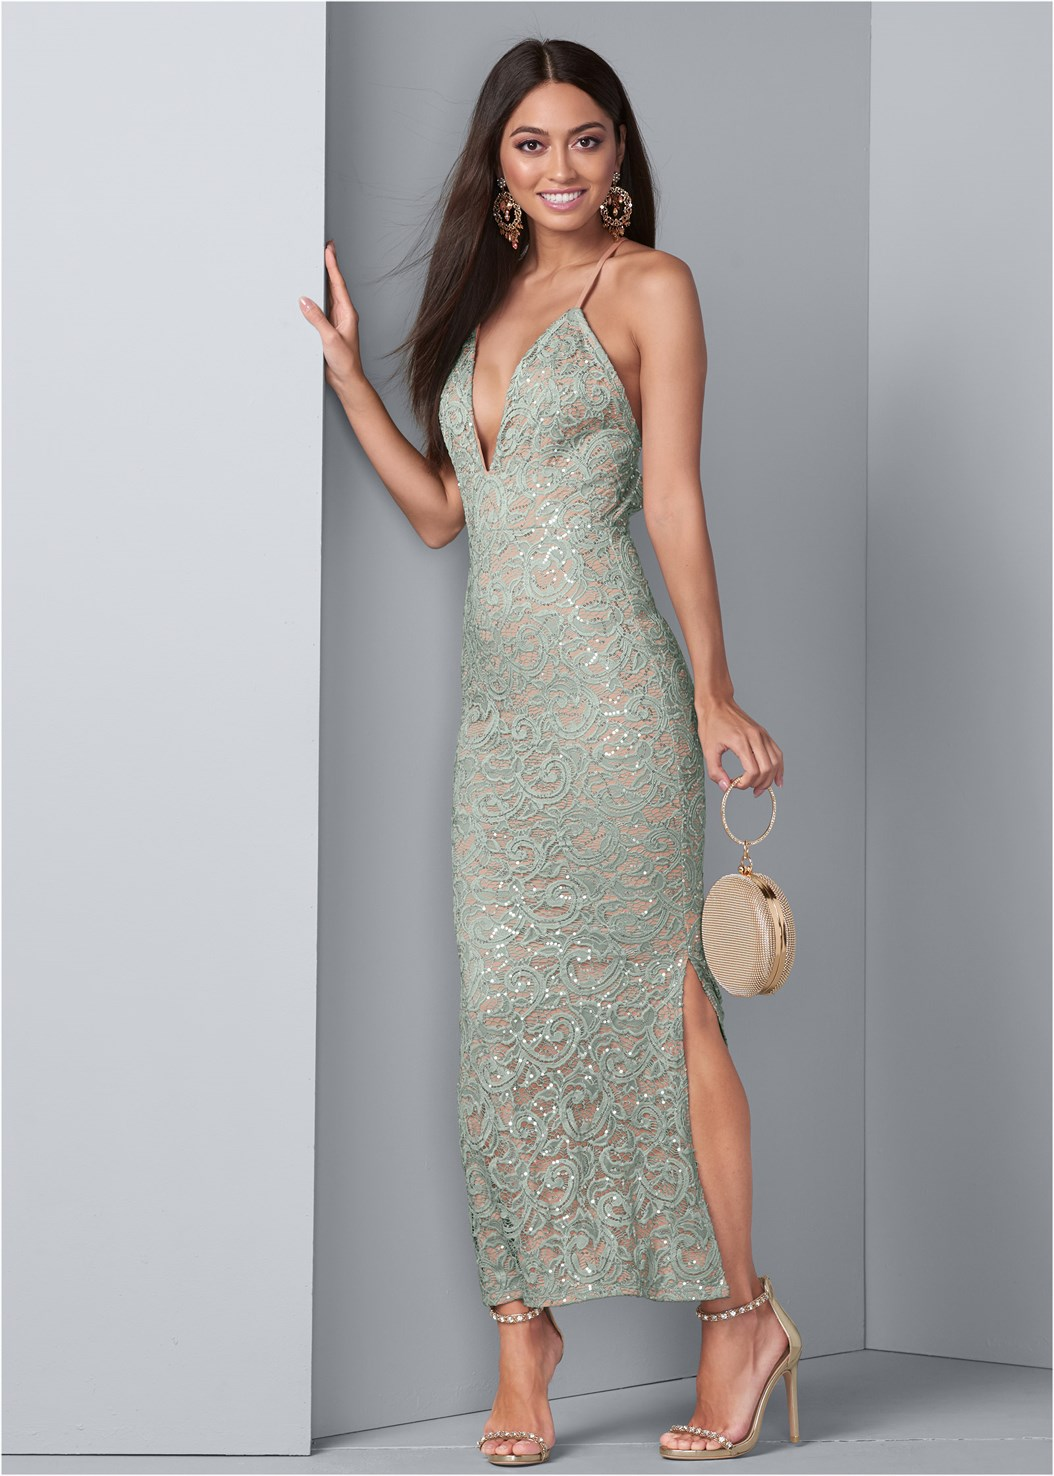 Sequin And Lace Gown,Lift It Up Backless And Strapless Plunge,Embellished Heels,Ring Handle Circle Clutch